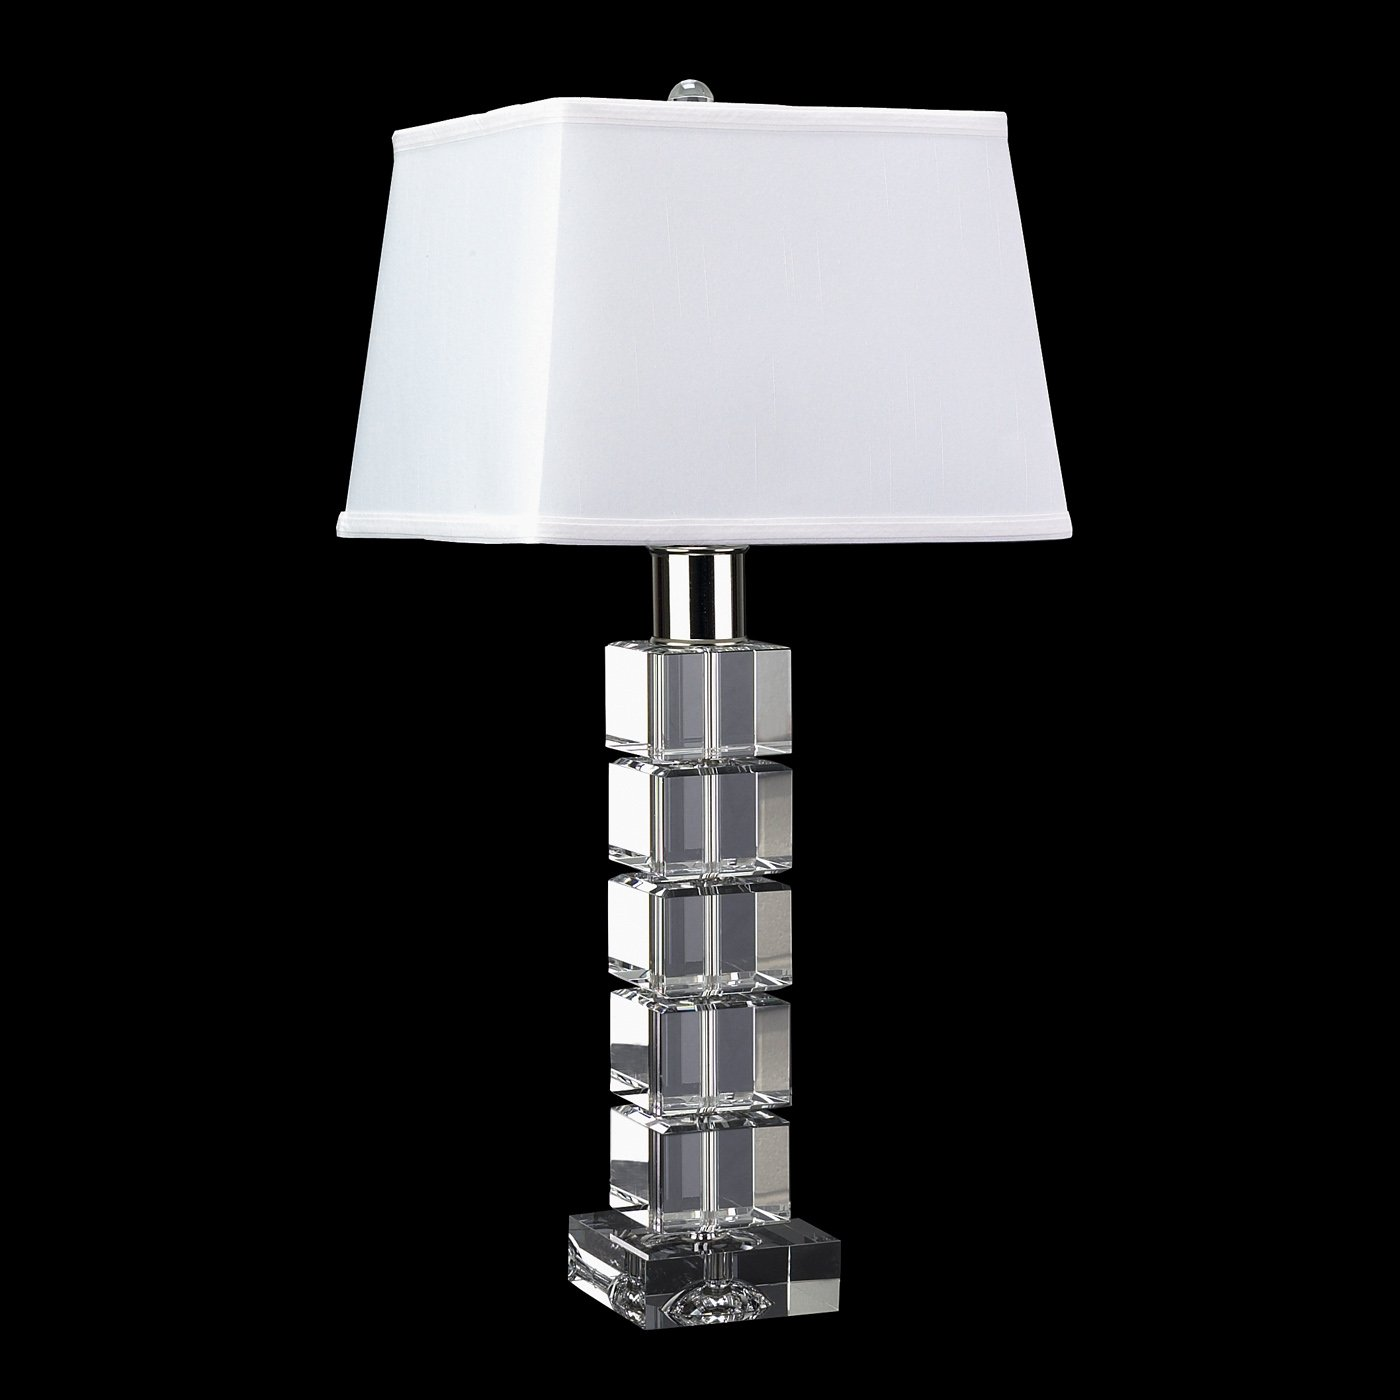 Wonderful Broyhill table lamps - 12 tips for choosing | Warisan Lighting XC68